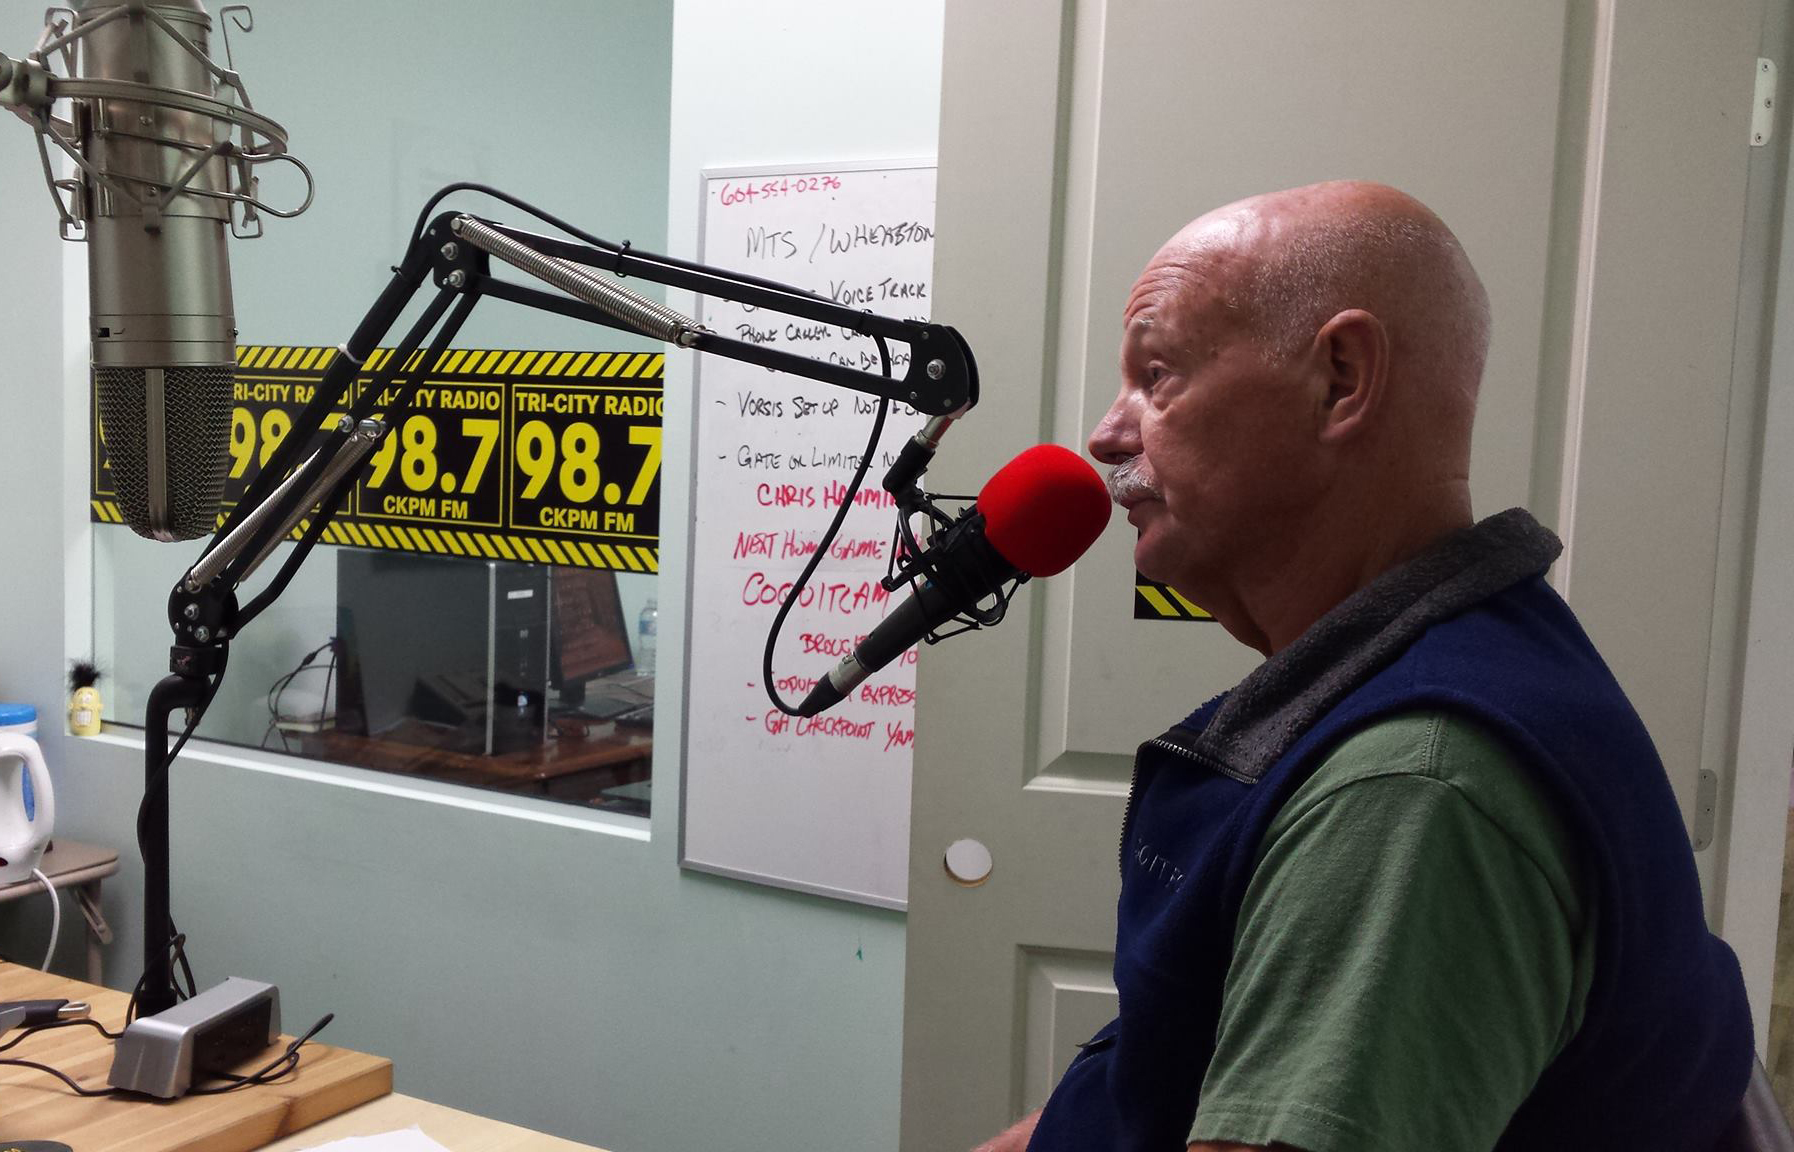 Chris being interviewed on radio in 2015.